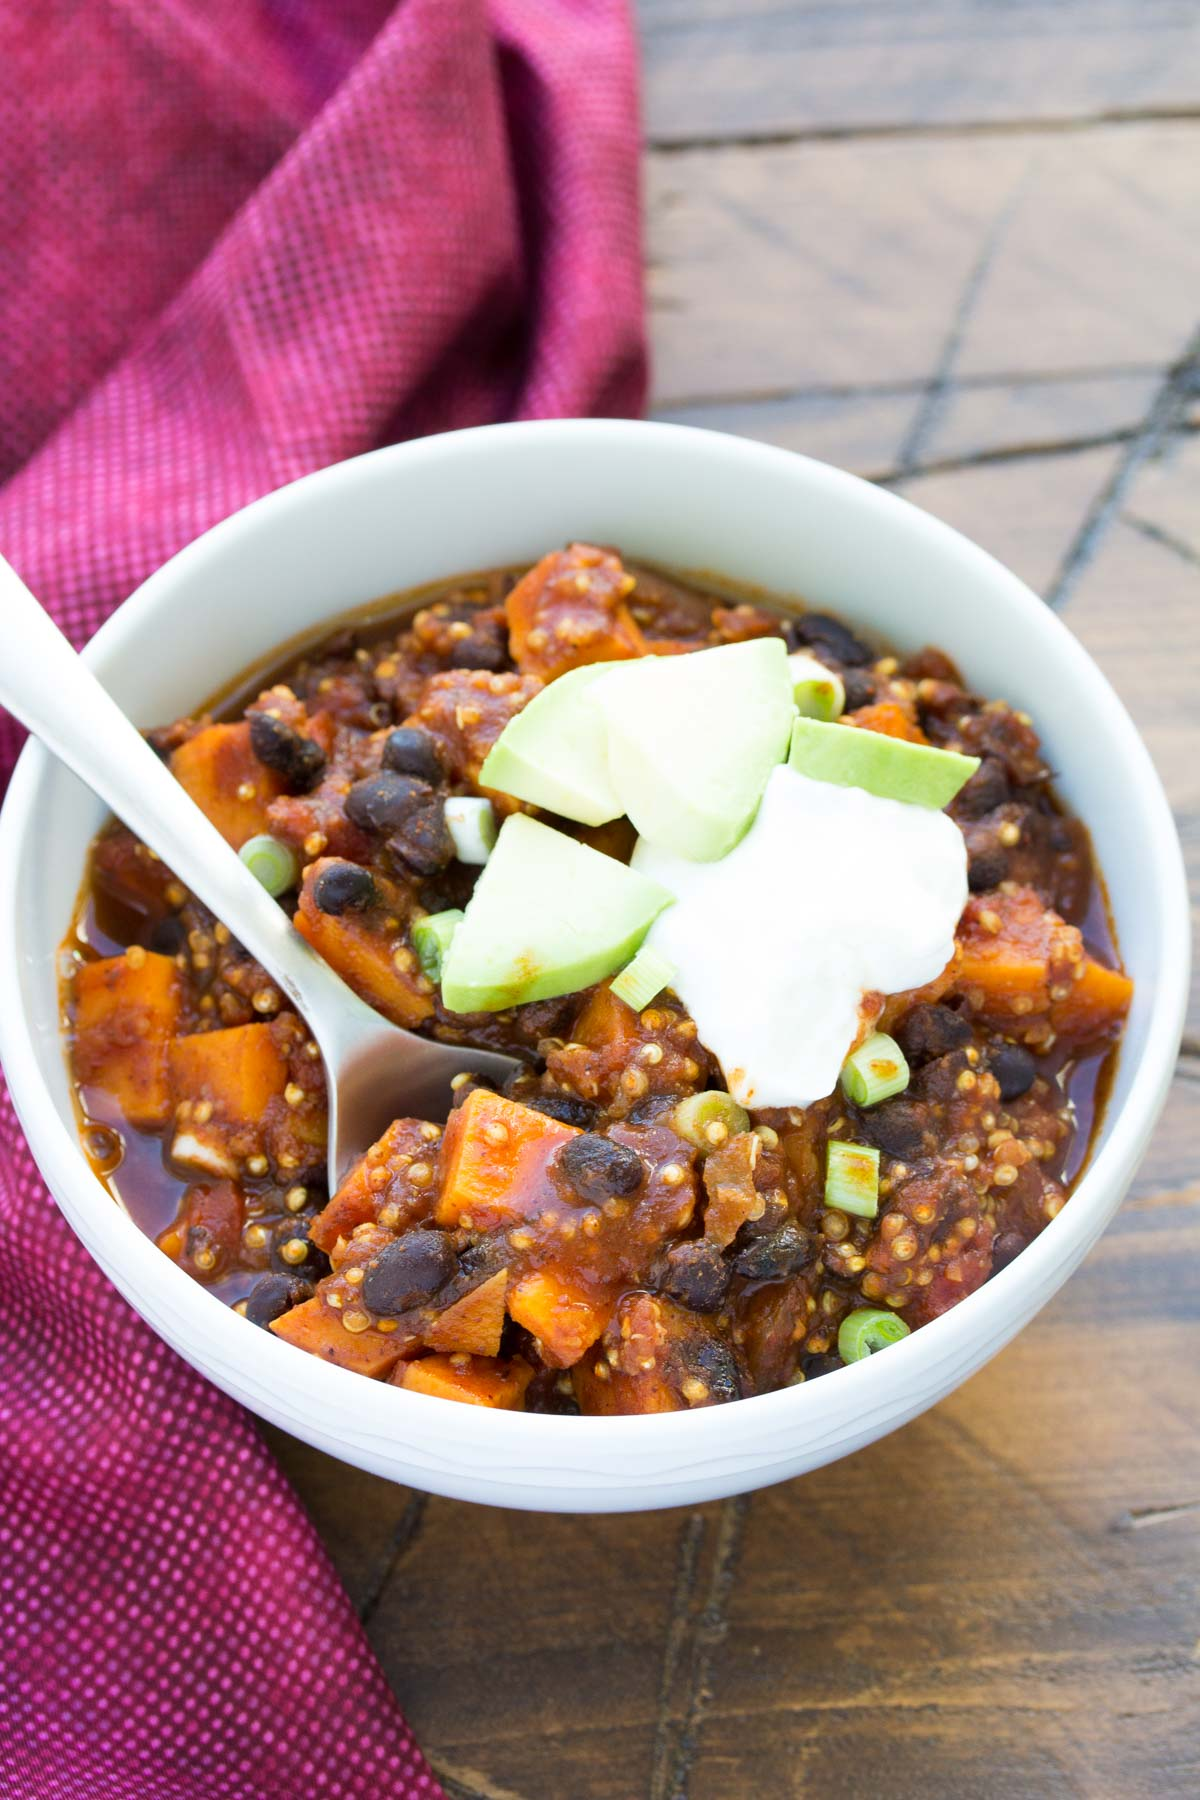 Sweet Potato and Black Bean Chili with Quinoa. Vegetarian, vegan option, fast and easy to make! | www.kristineskitchenblog.com